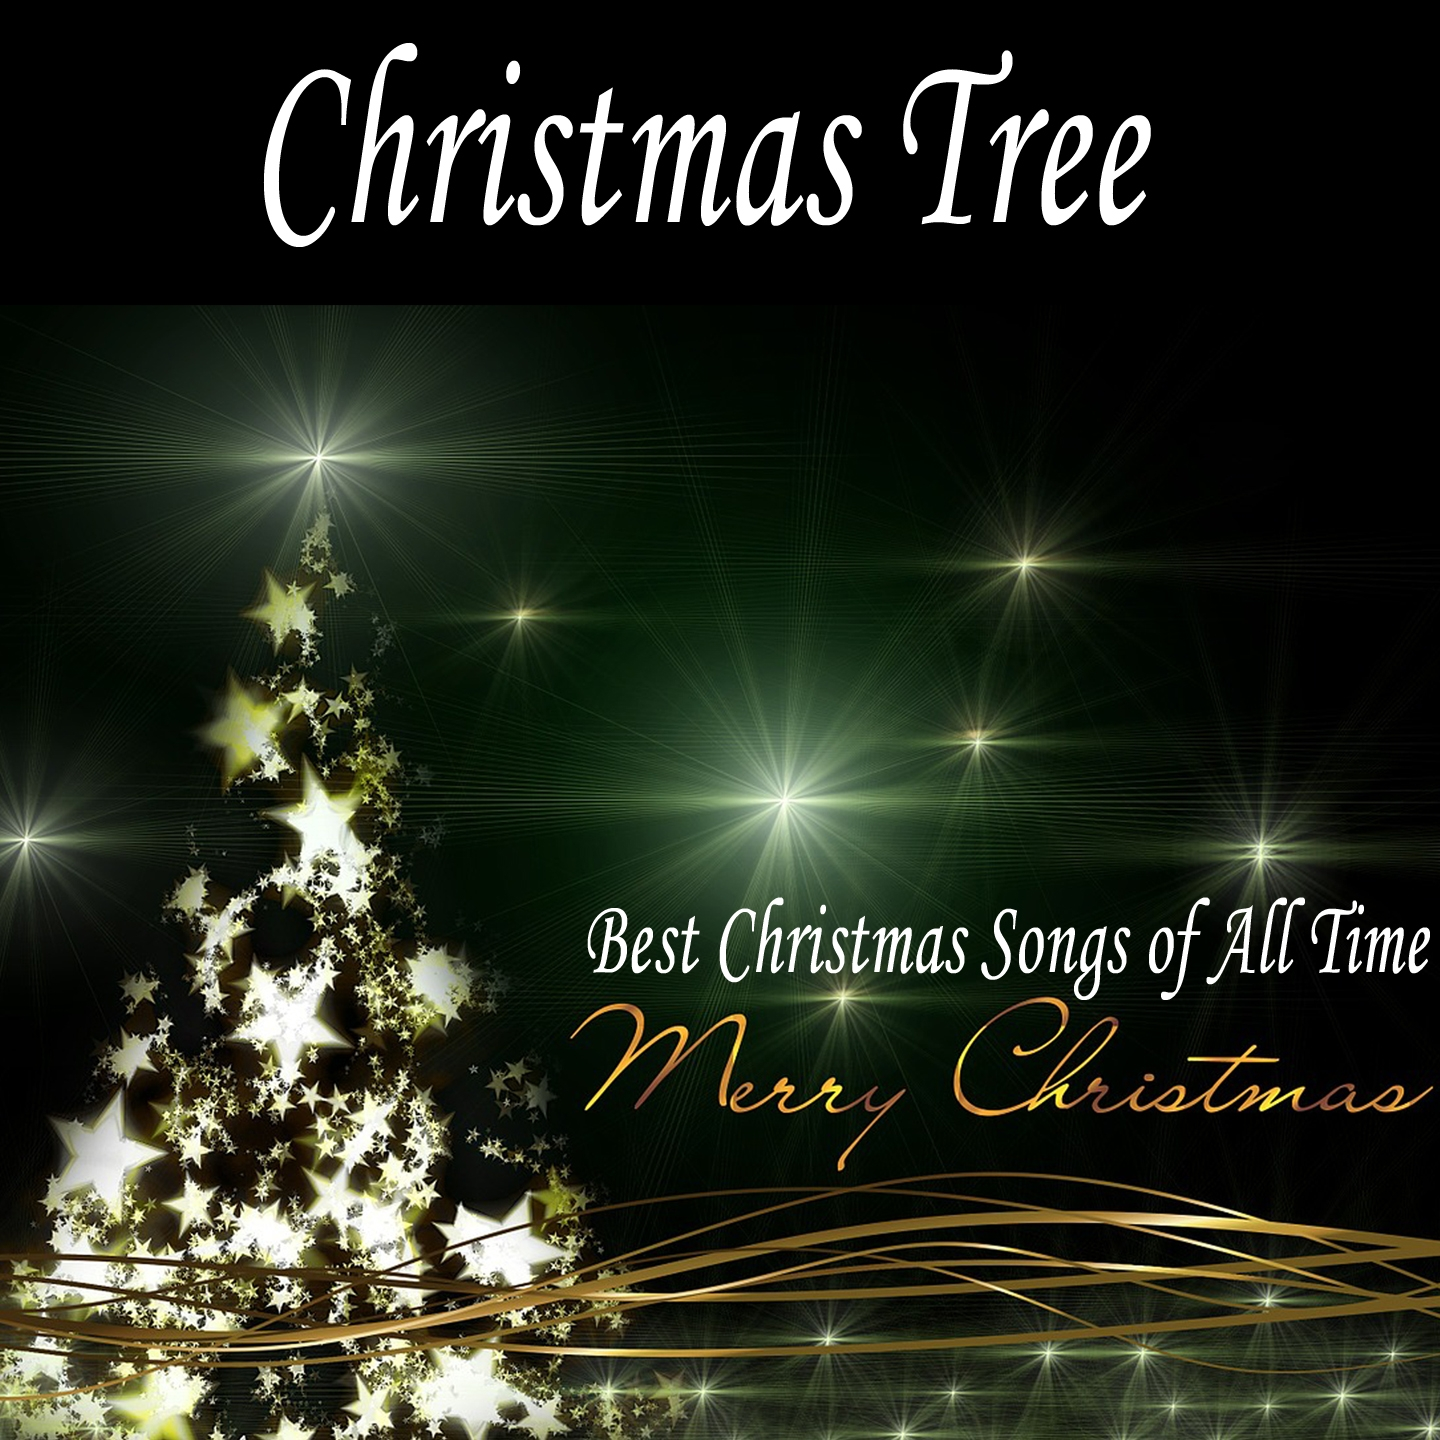 Christmas Tree: Best Christmas Songs of All Time